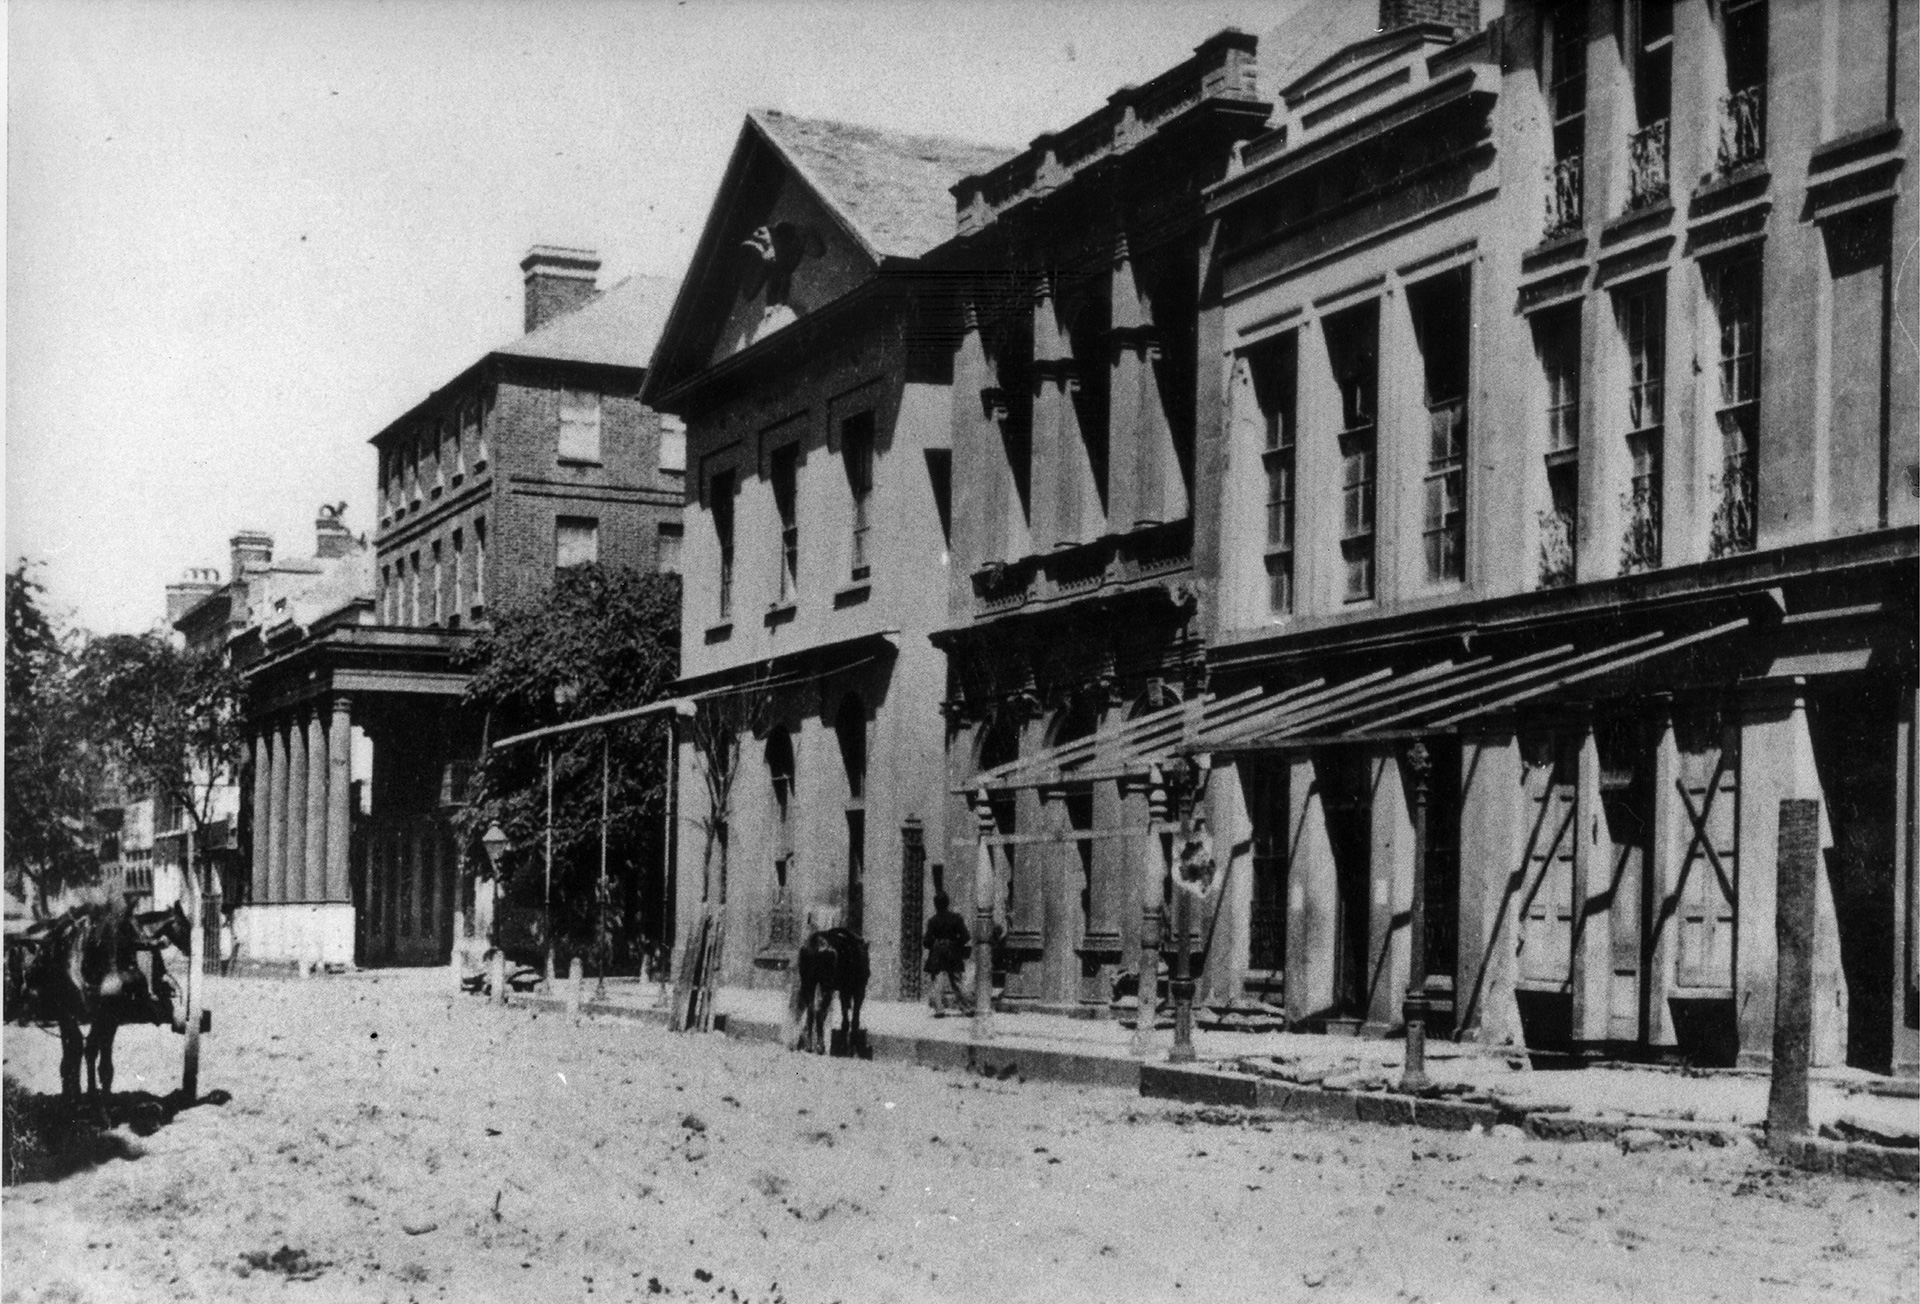 Broad Street looking west, spring 1865